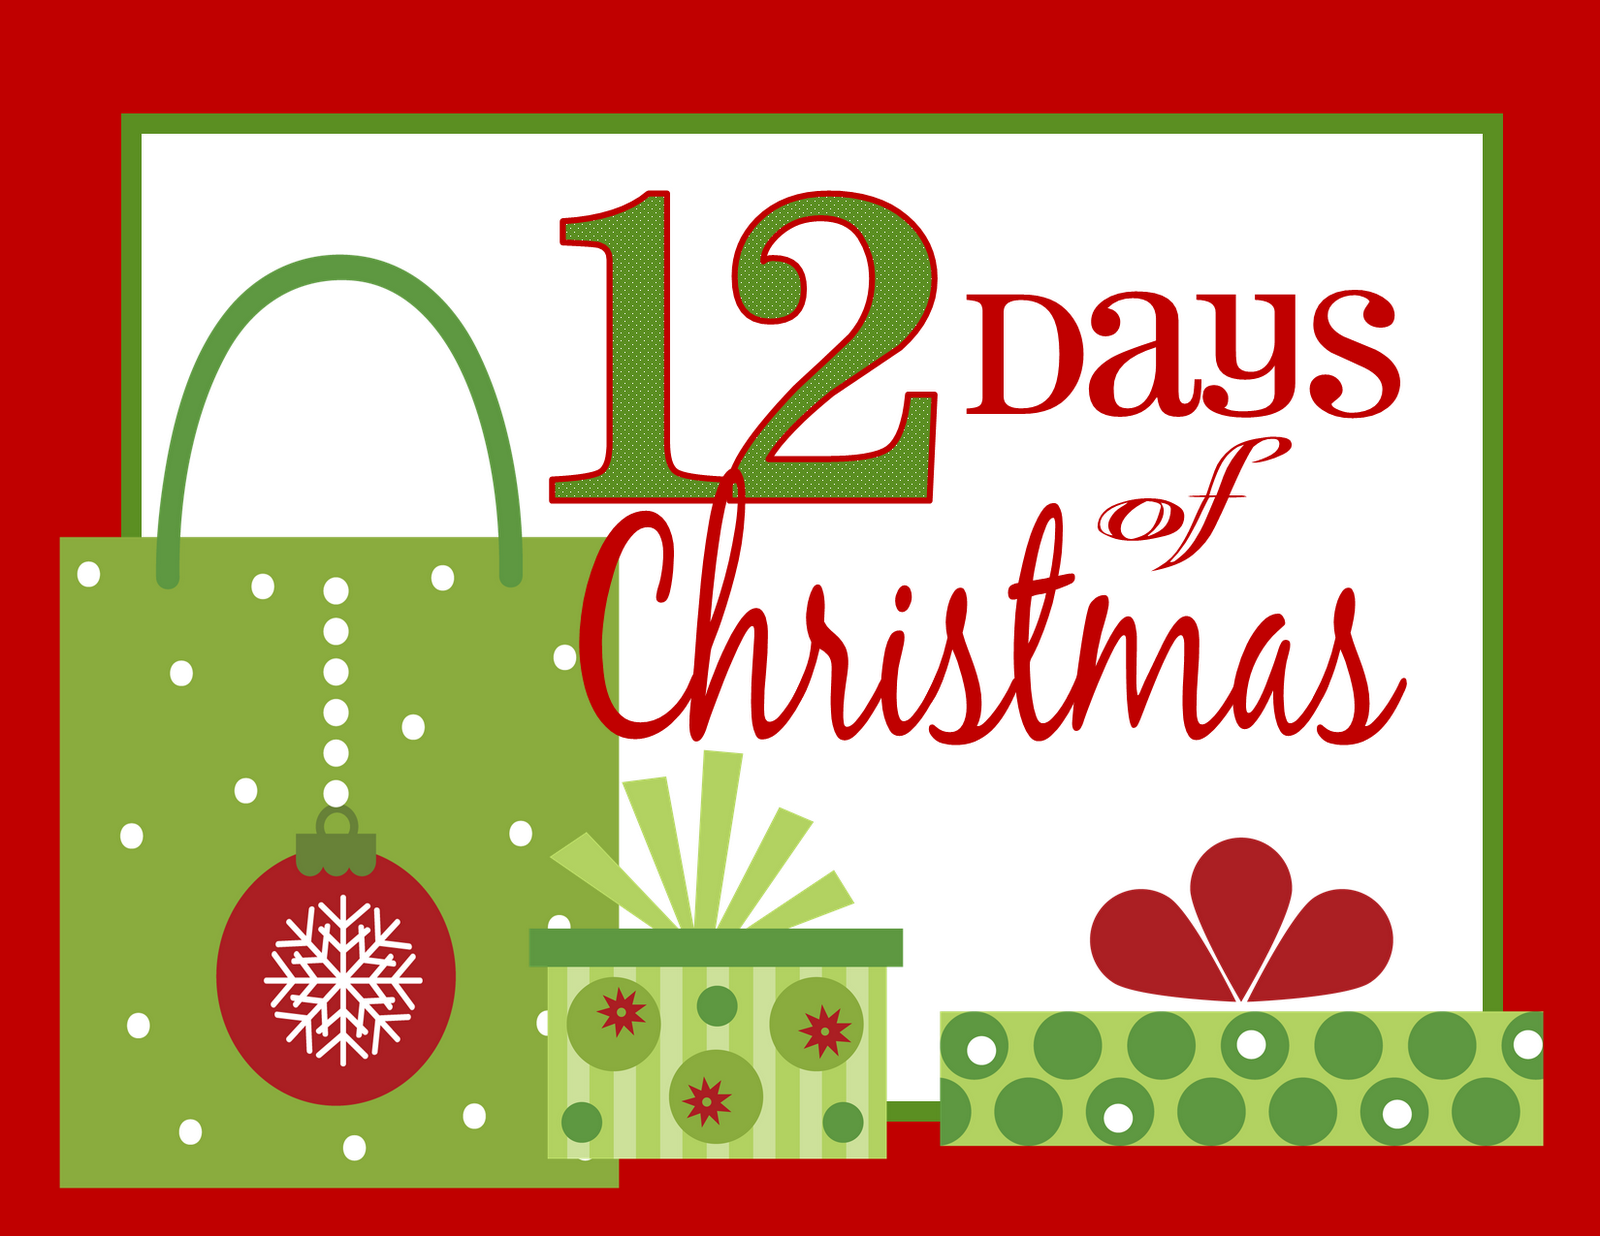 in the 12 days of christmas